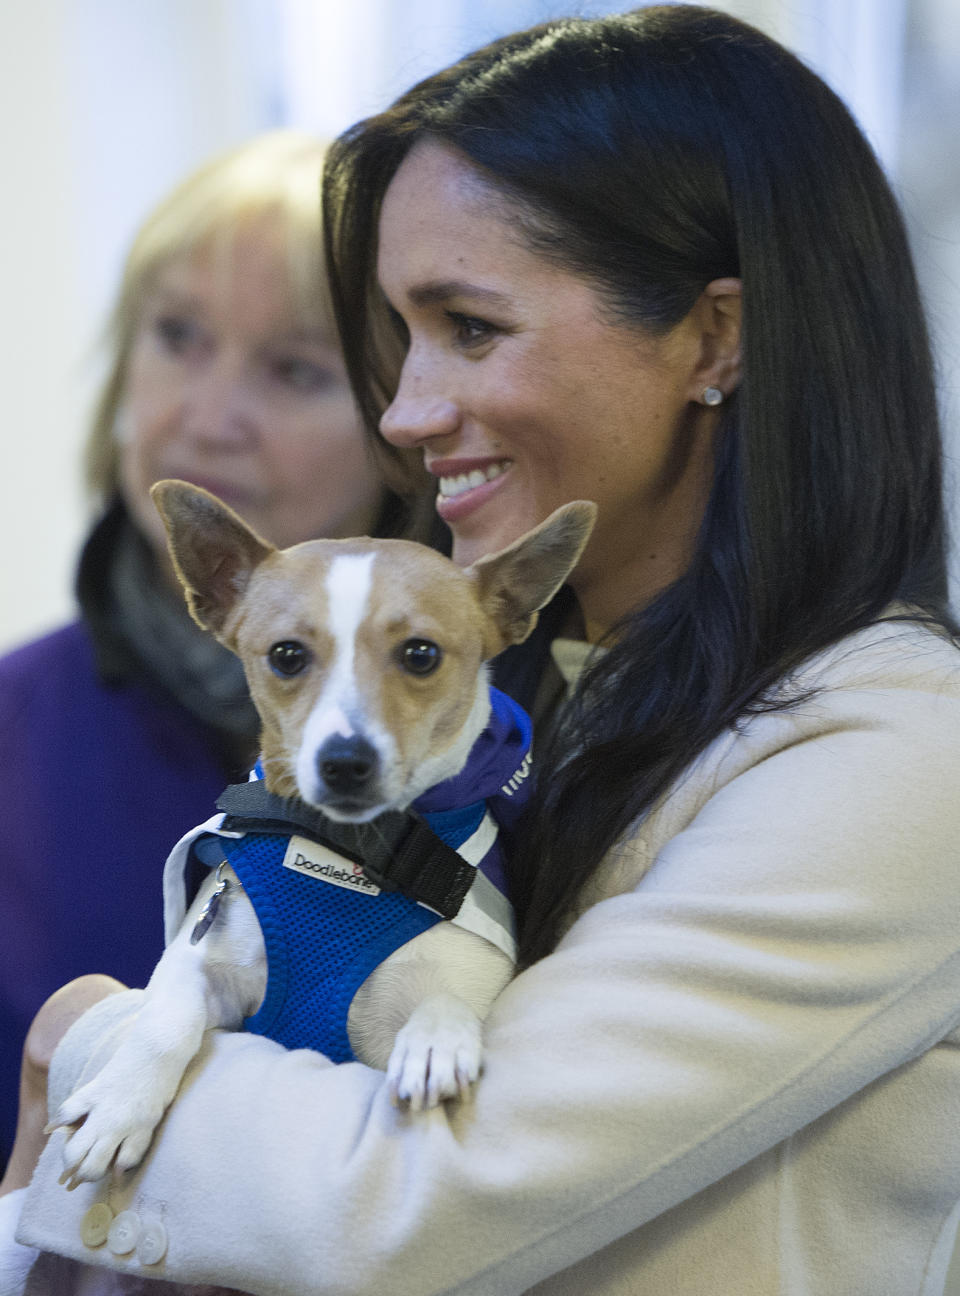 """Meghan, Duchess of Sussex meets a Jack Russell dog named """"Minnie"""" during her visit to the animal welfare charity Mayhew in London on January 16, 2019. - Established in 1886, Mayhew looks for innovative ways to reduce the number of animals in need through pro-active community and educational initiatives and preventative veterinary care. (Photo by Eddie MULHOLLAND / POOL / AFP)        (Photo credit should read EDDIE MULHOLLAND/AFP via Getty Images)"""